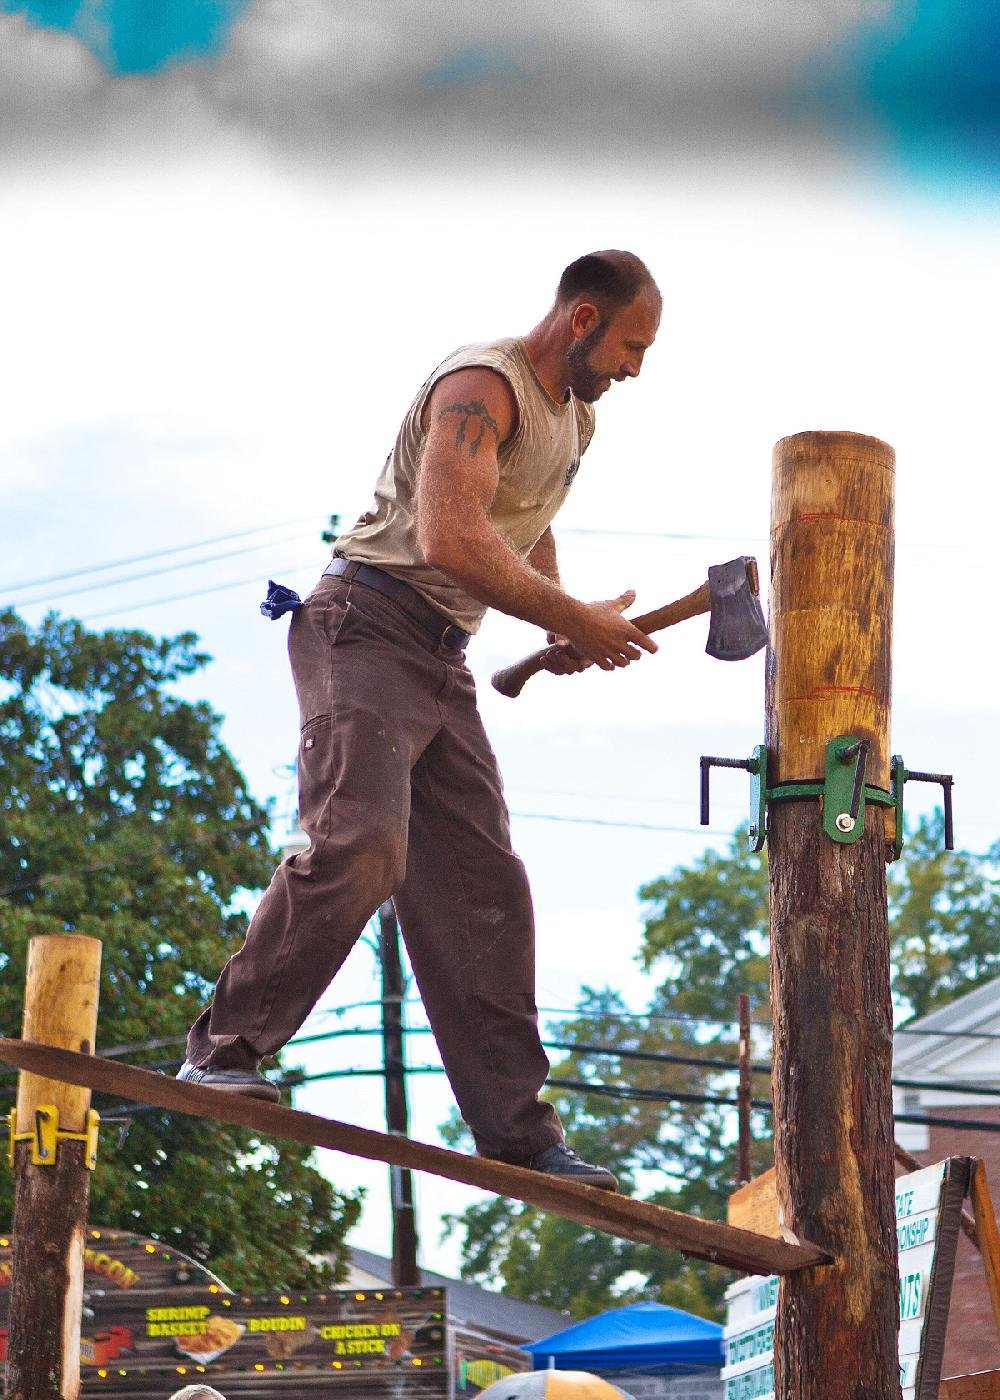 Axe to grind? The 35th annual Timberfest will be held in downtown Sheridan on Friday and Saturday.